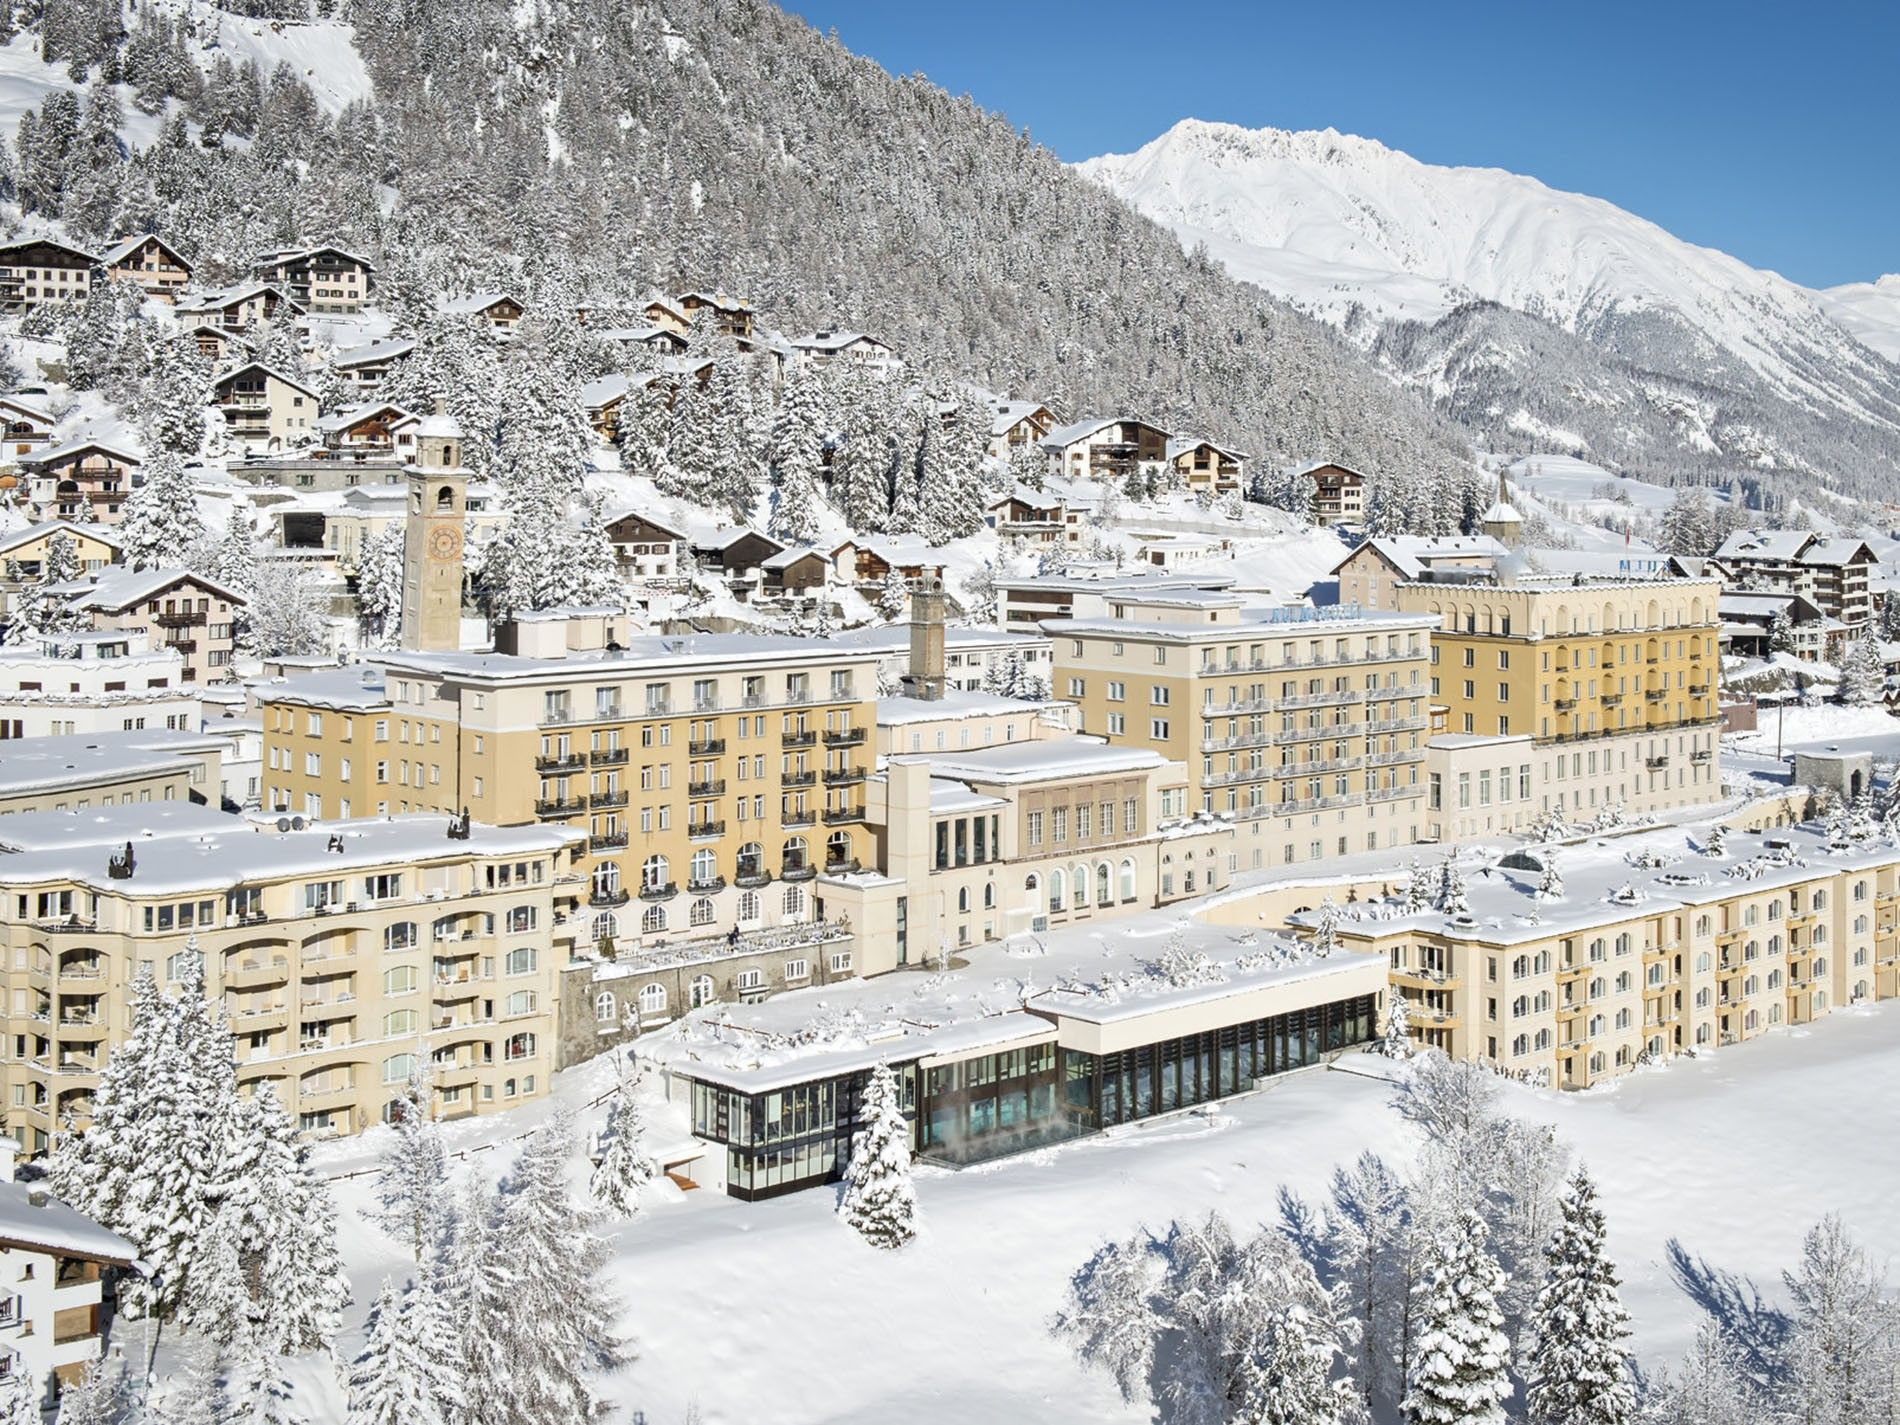 View of Kulm Hotel St. Moritz covered in snow